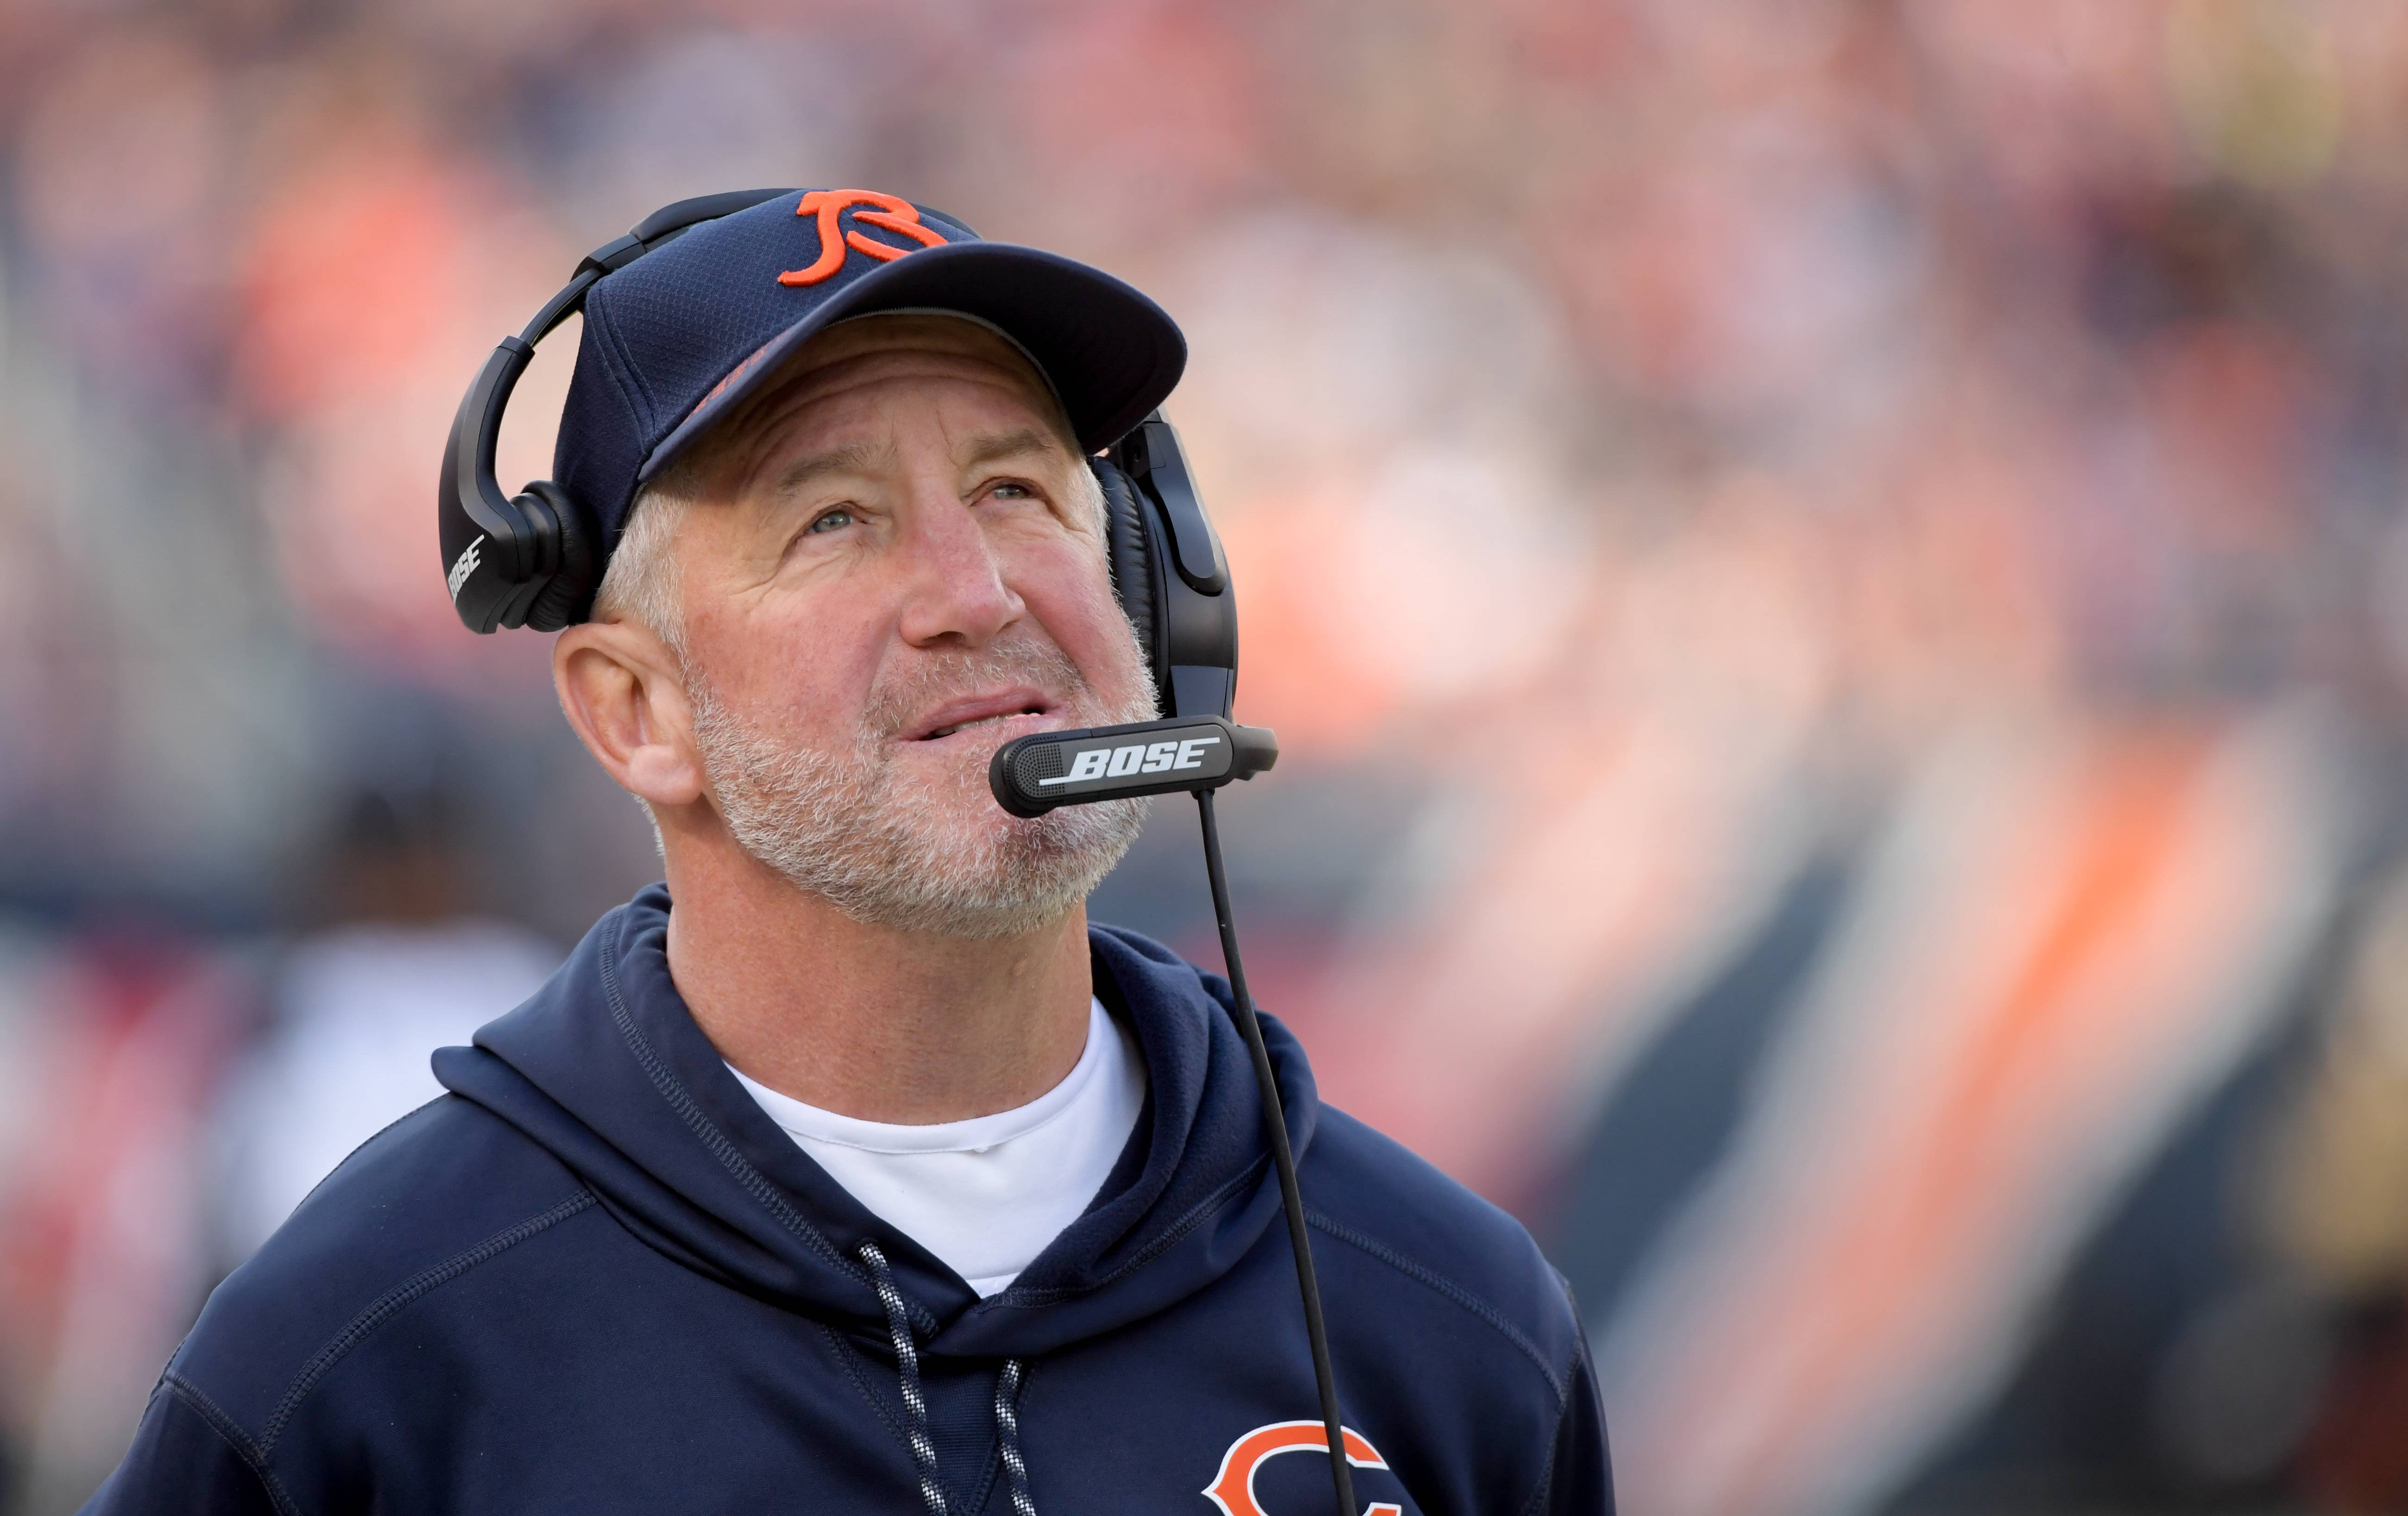 If the Chicago Bears only fire head coach John Fox, he will be blamed for everything and the story will quickly change to another high draft pick and the great future ahead.